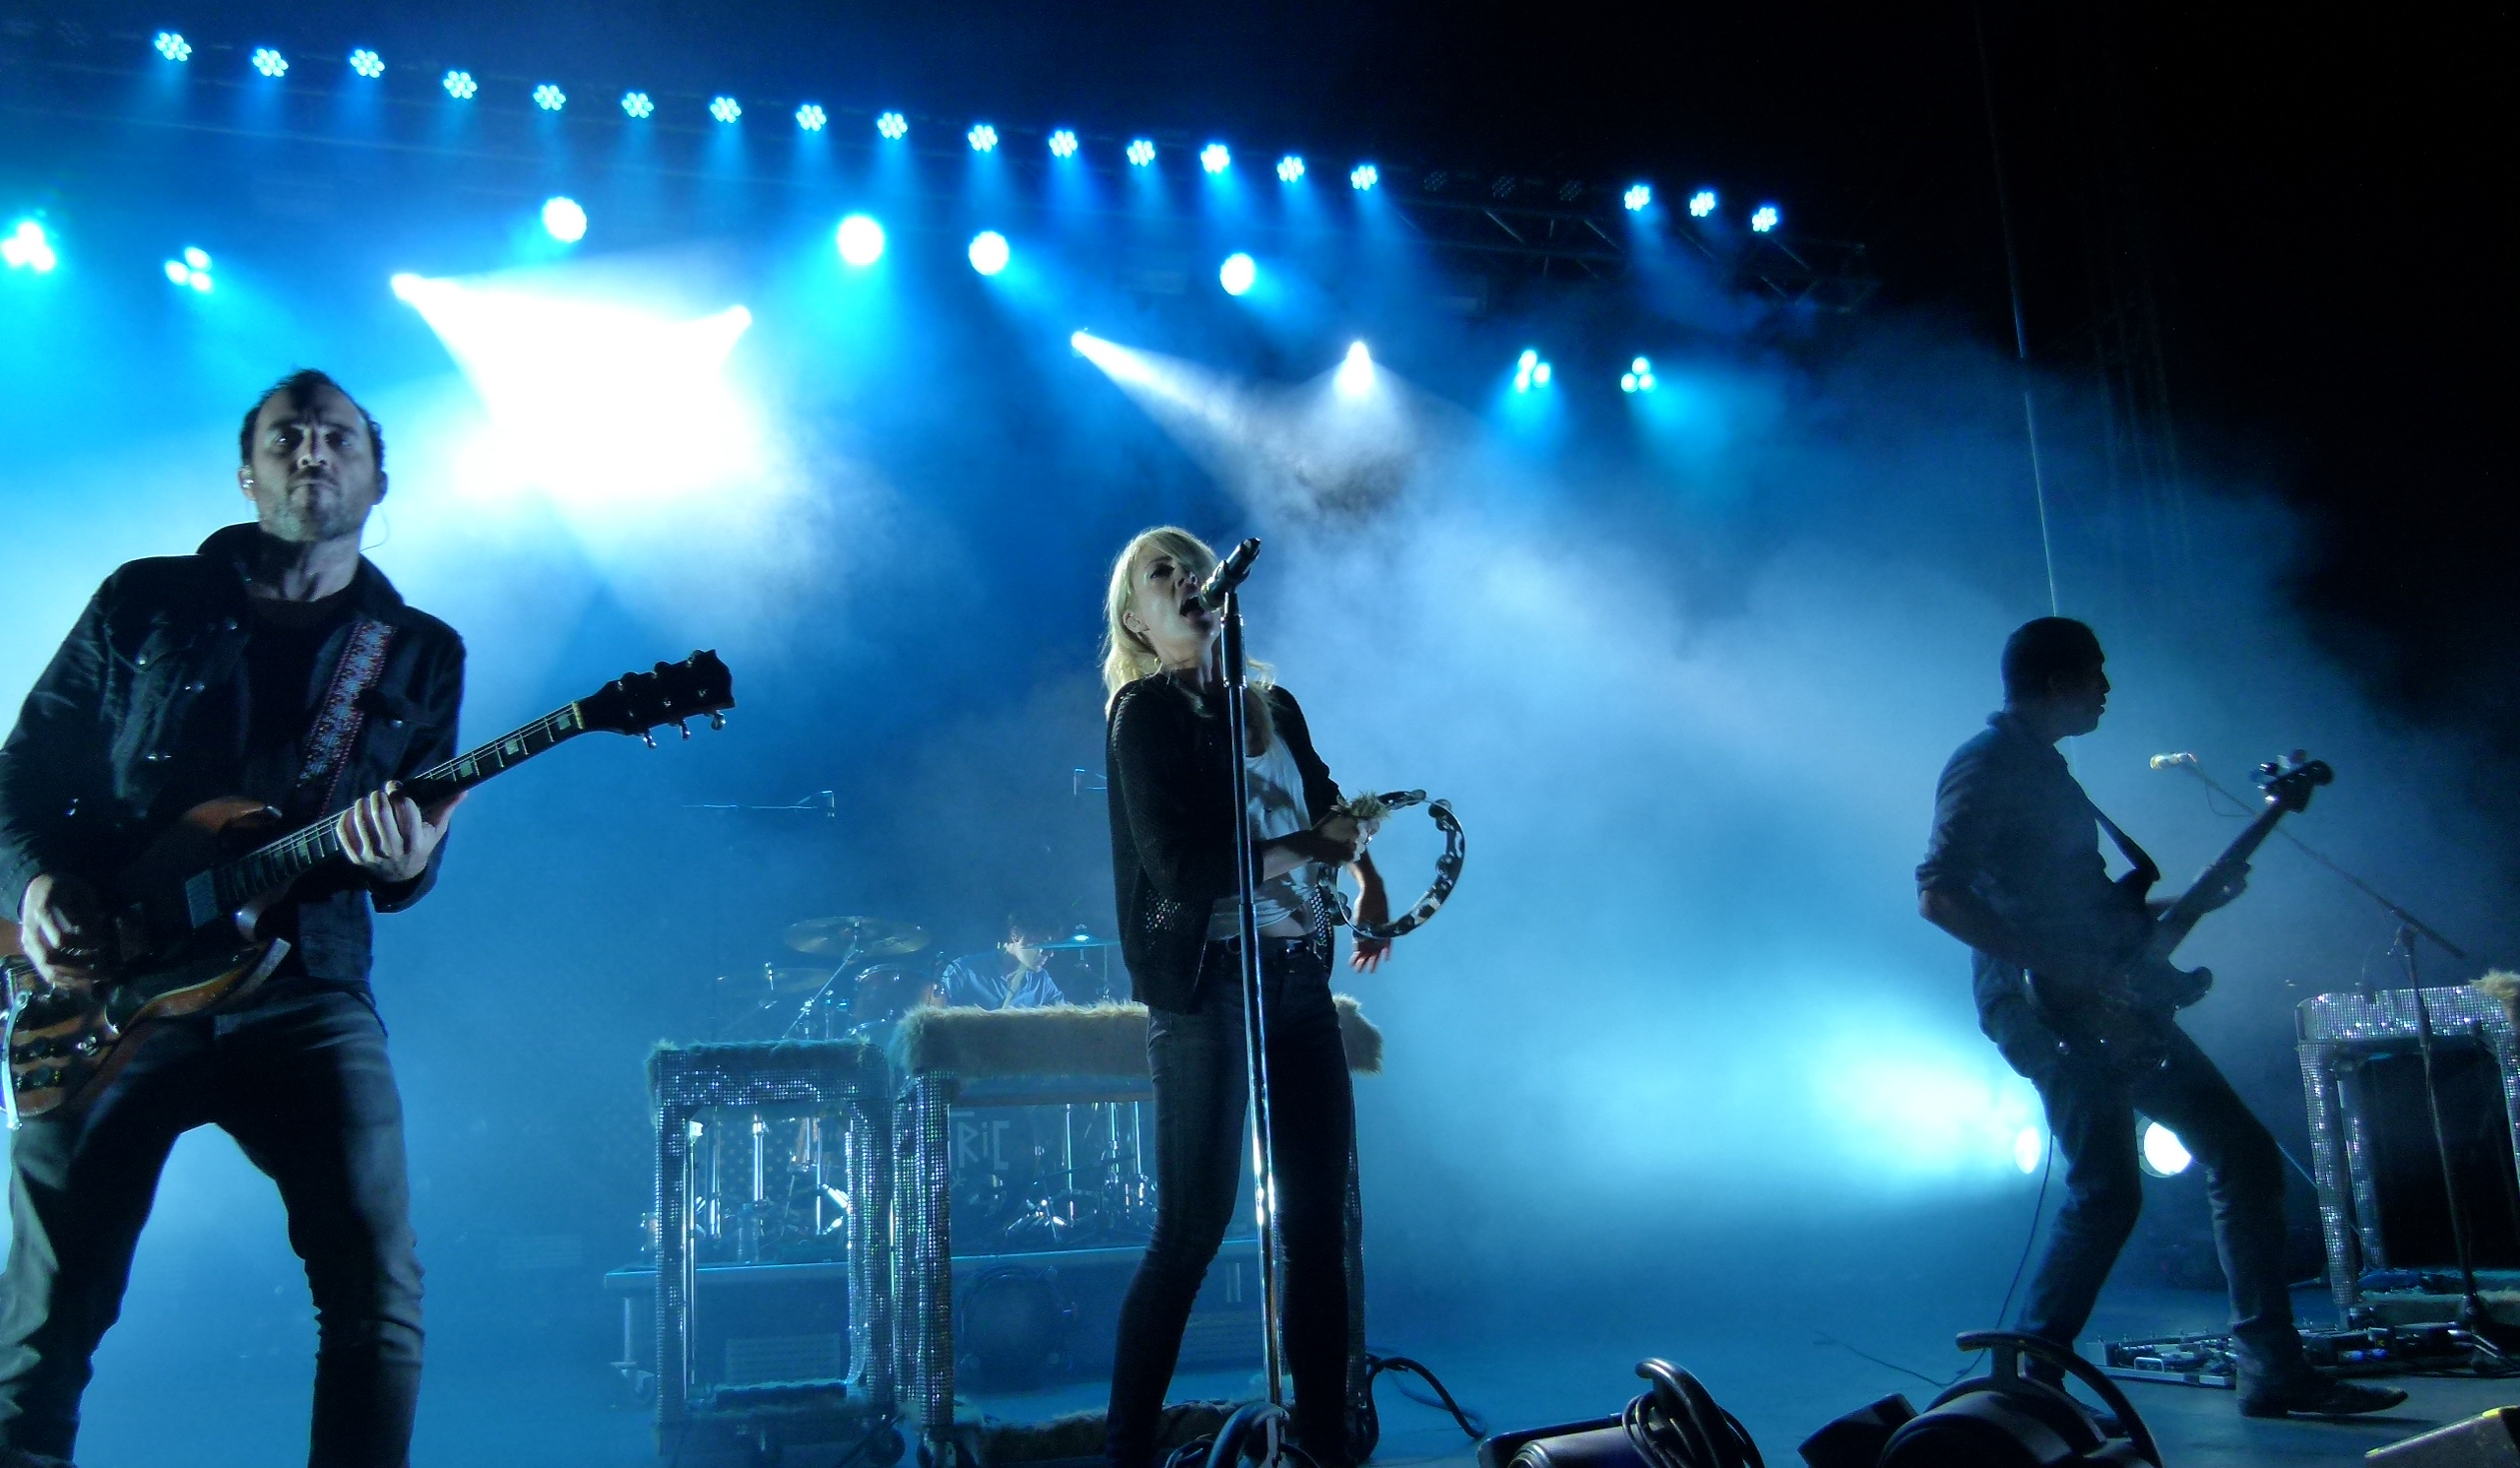 Metric jamming at center stage, l. to r., James Shaw, Joules Scott-Key (background), Emily Haines, and Joshua Winstead.